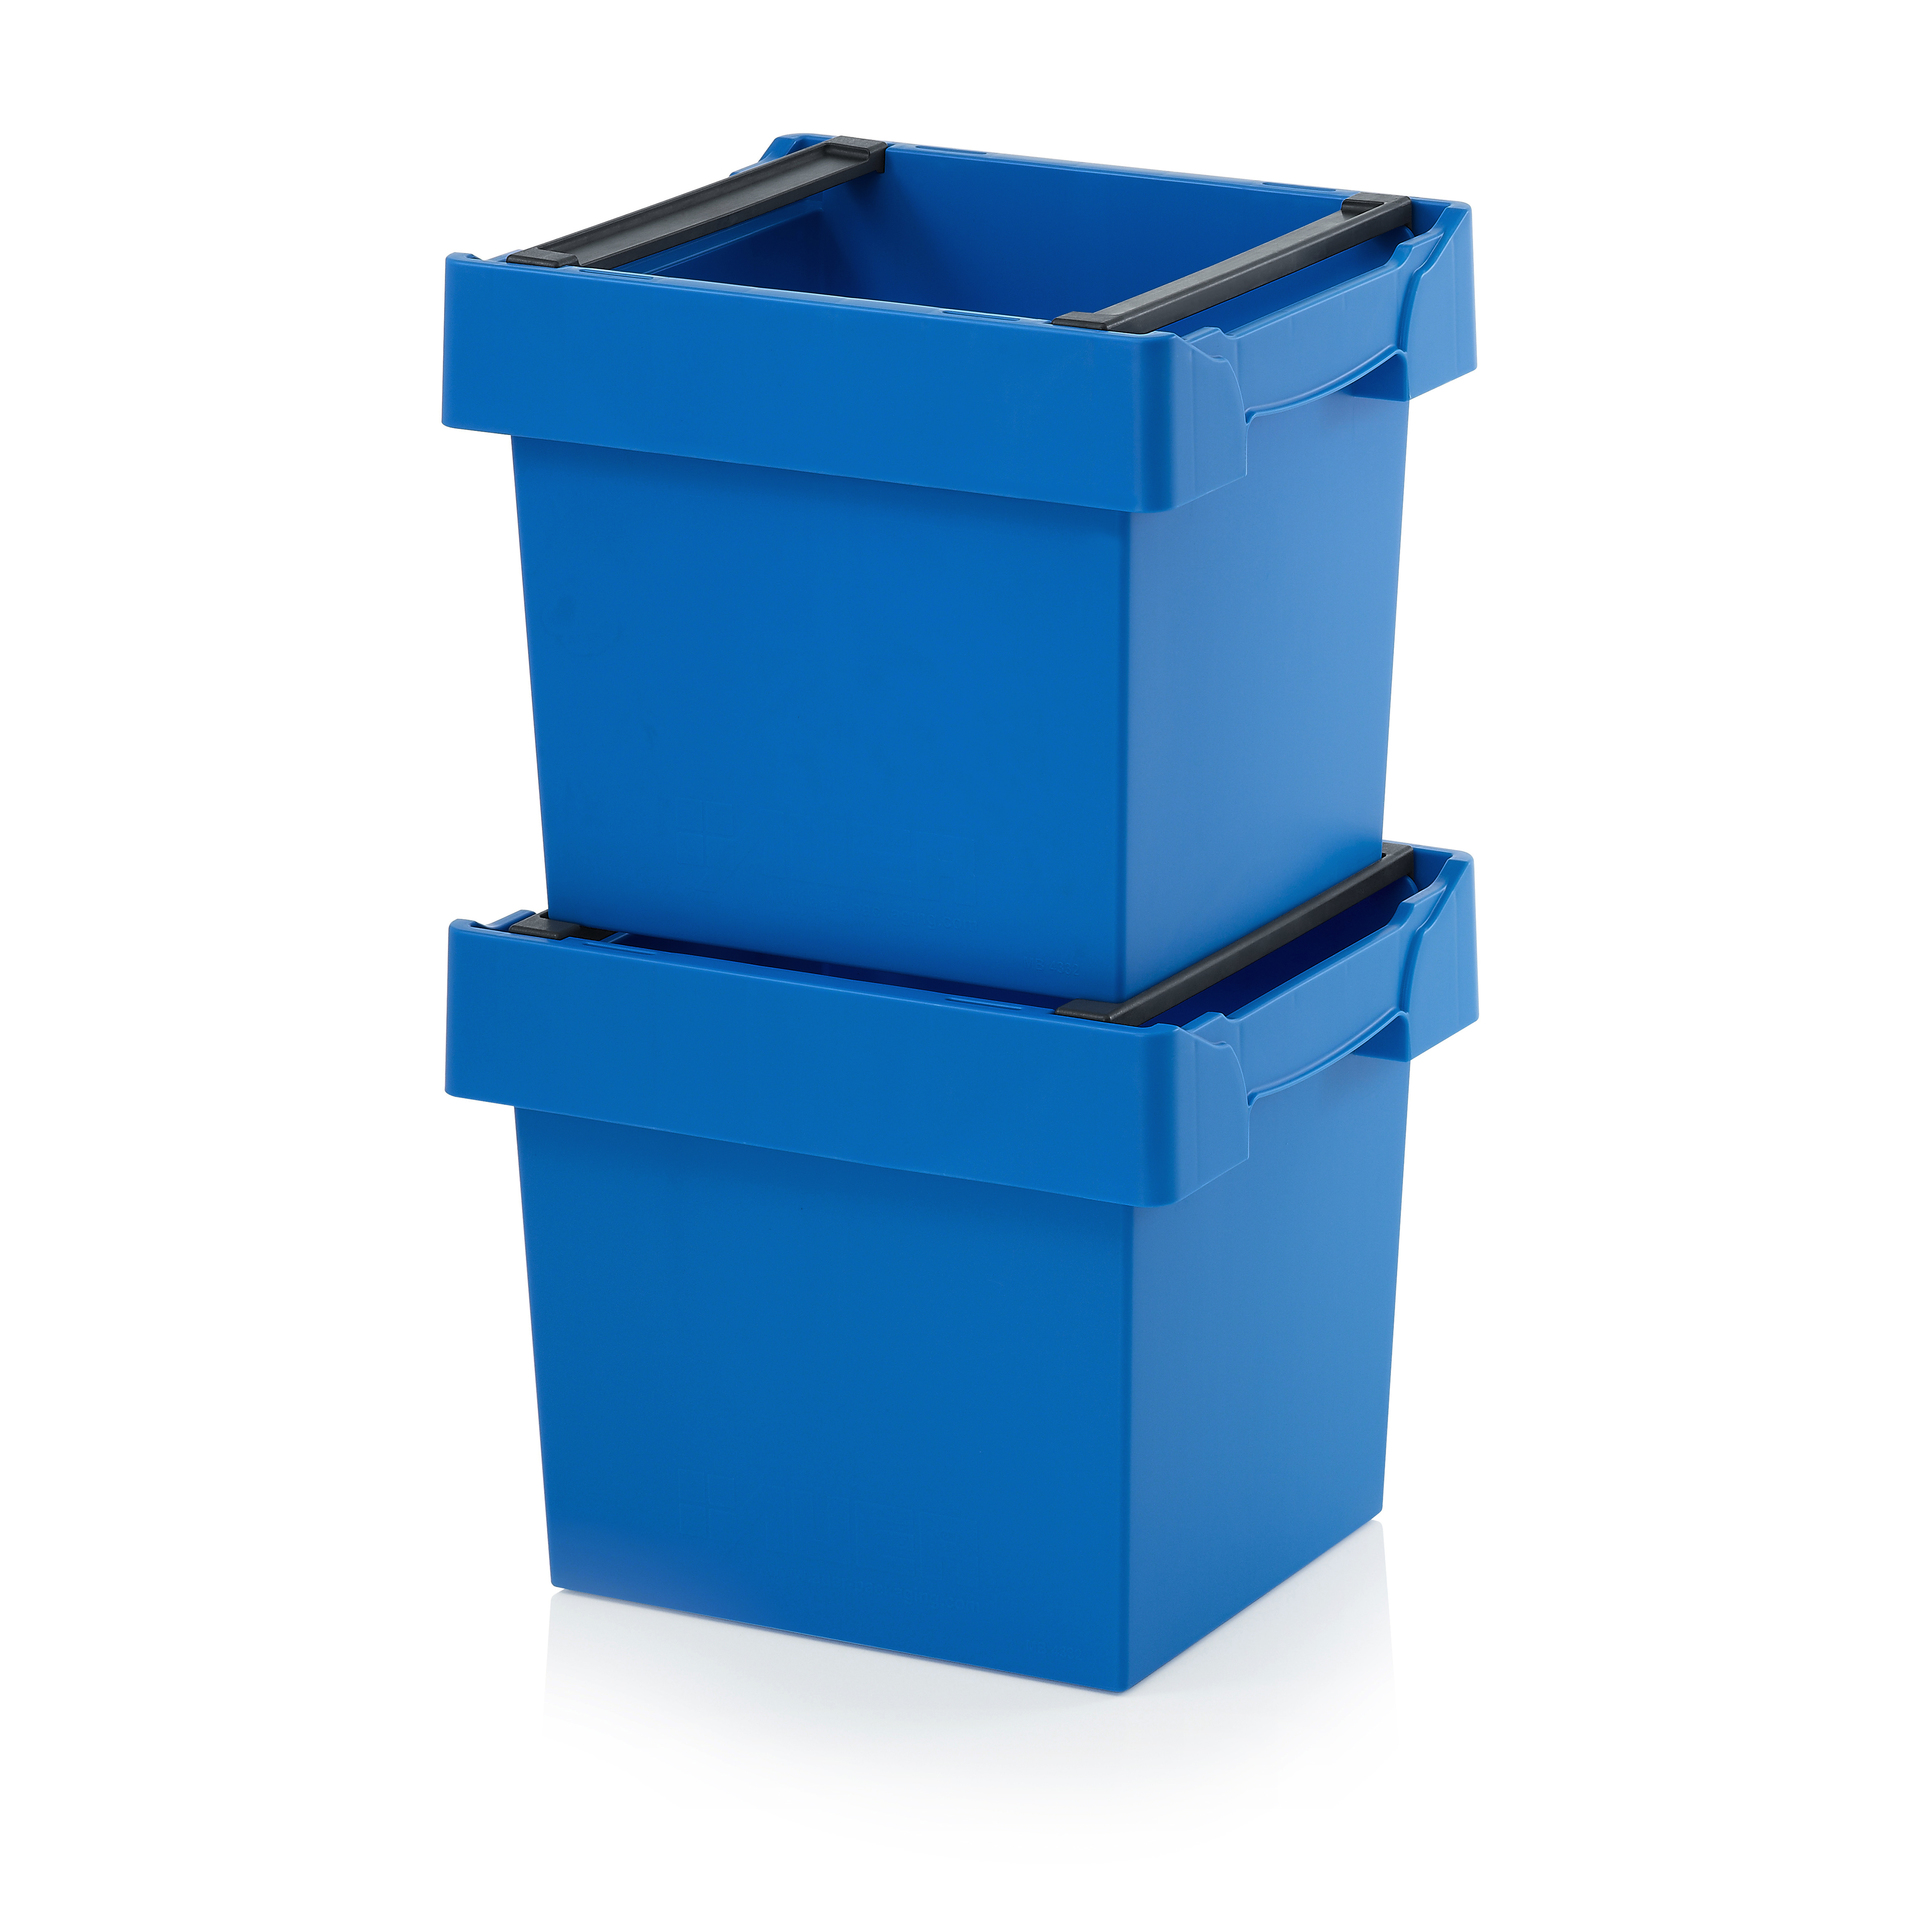 RC4320F_3 Reusable Containers - Plastic Mouldings Northern